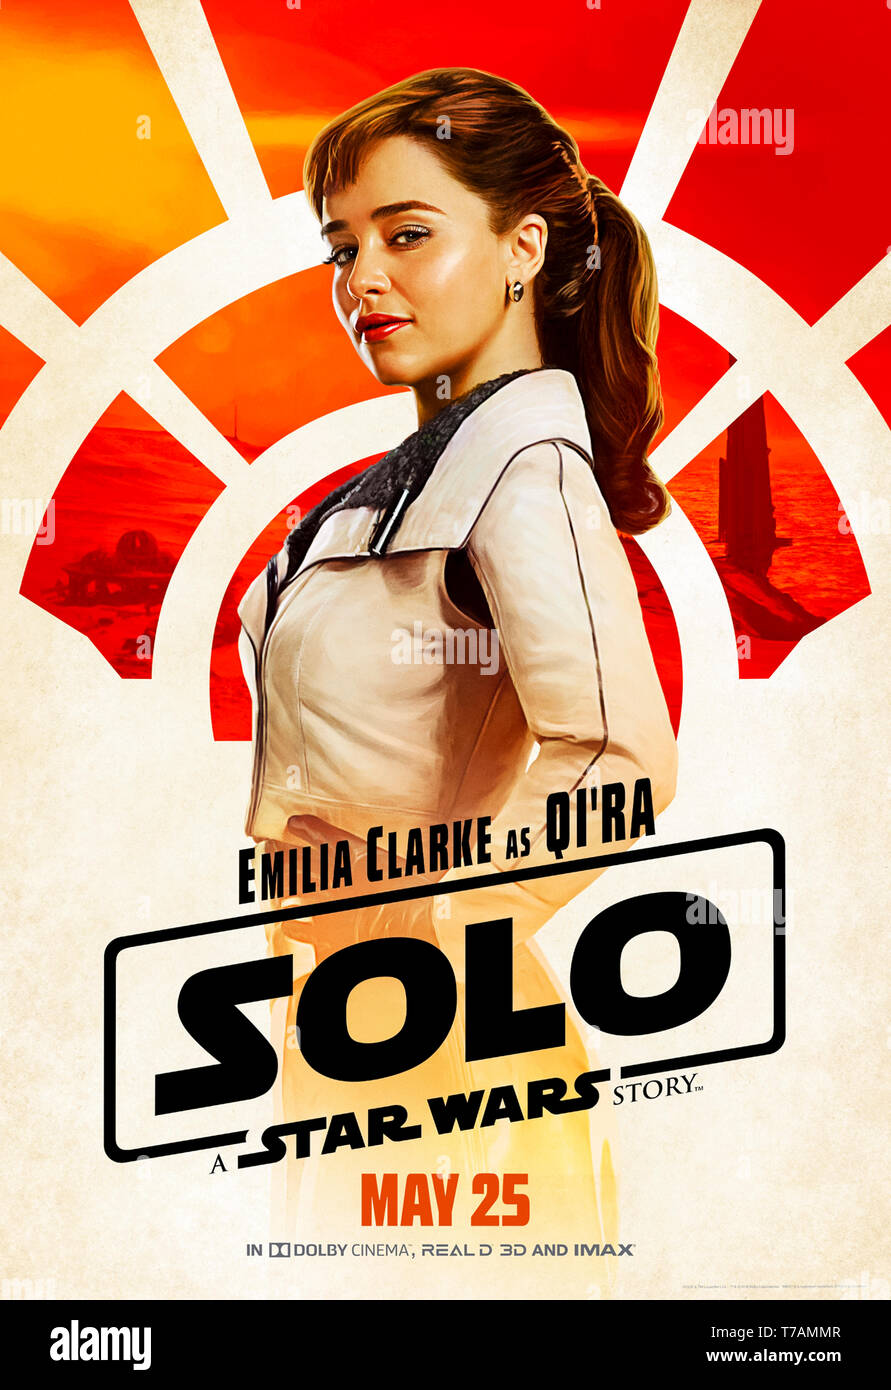 Solo A Star Wars Story 2018 Directed By Ron Howard And Starring Emilia Clarke As Qi Ra Han Solo S Childhood Best Friend And First Love Stock Photo Alamy